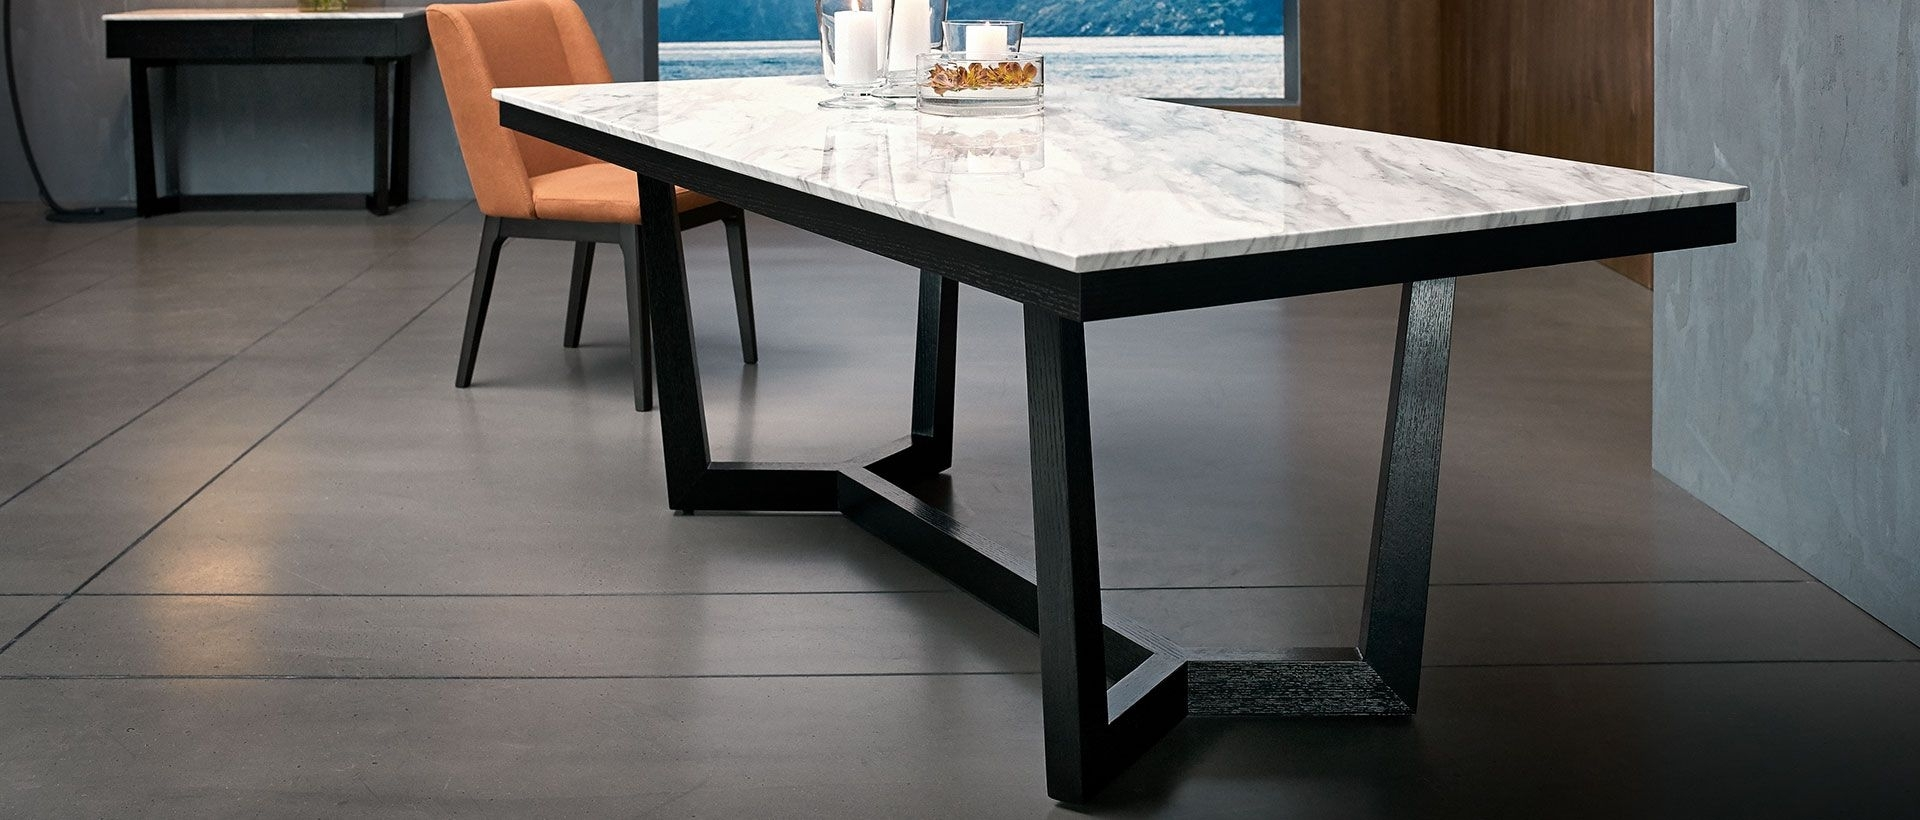 Nick Scali Furniture For Newest Perth Glass Dining Tables (View 6 of 25)